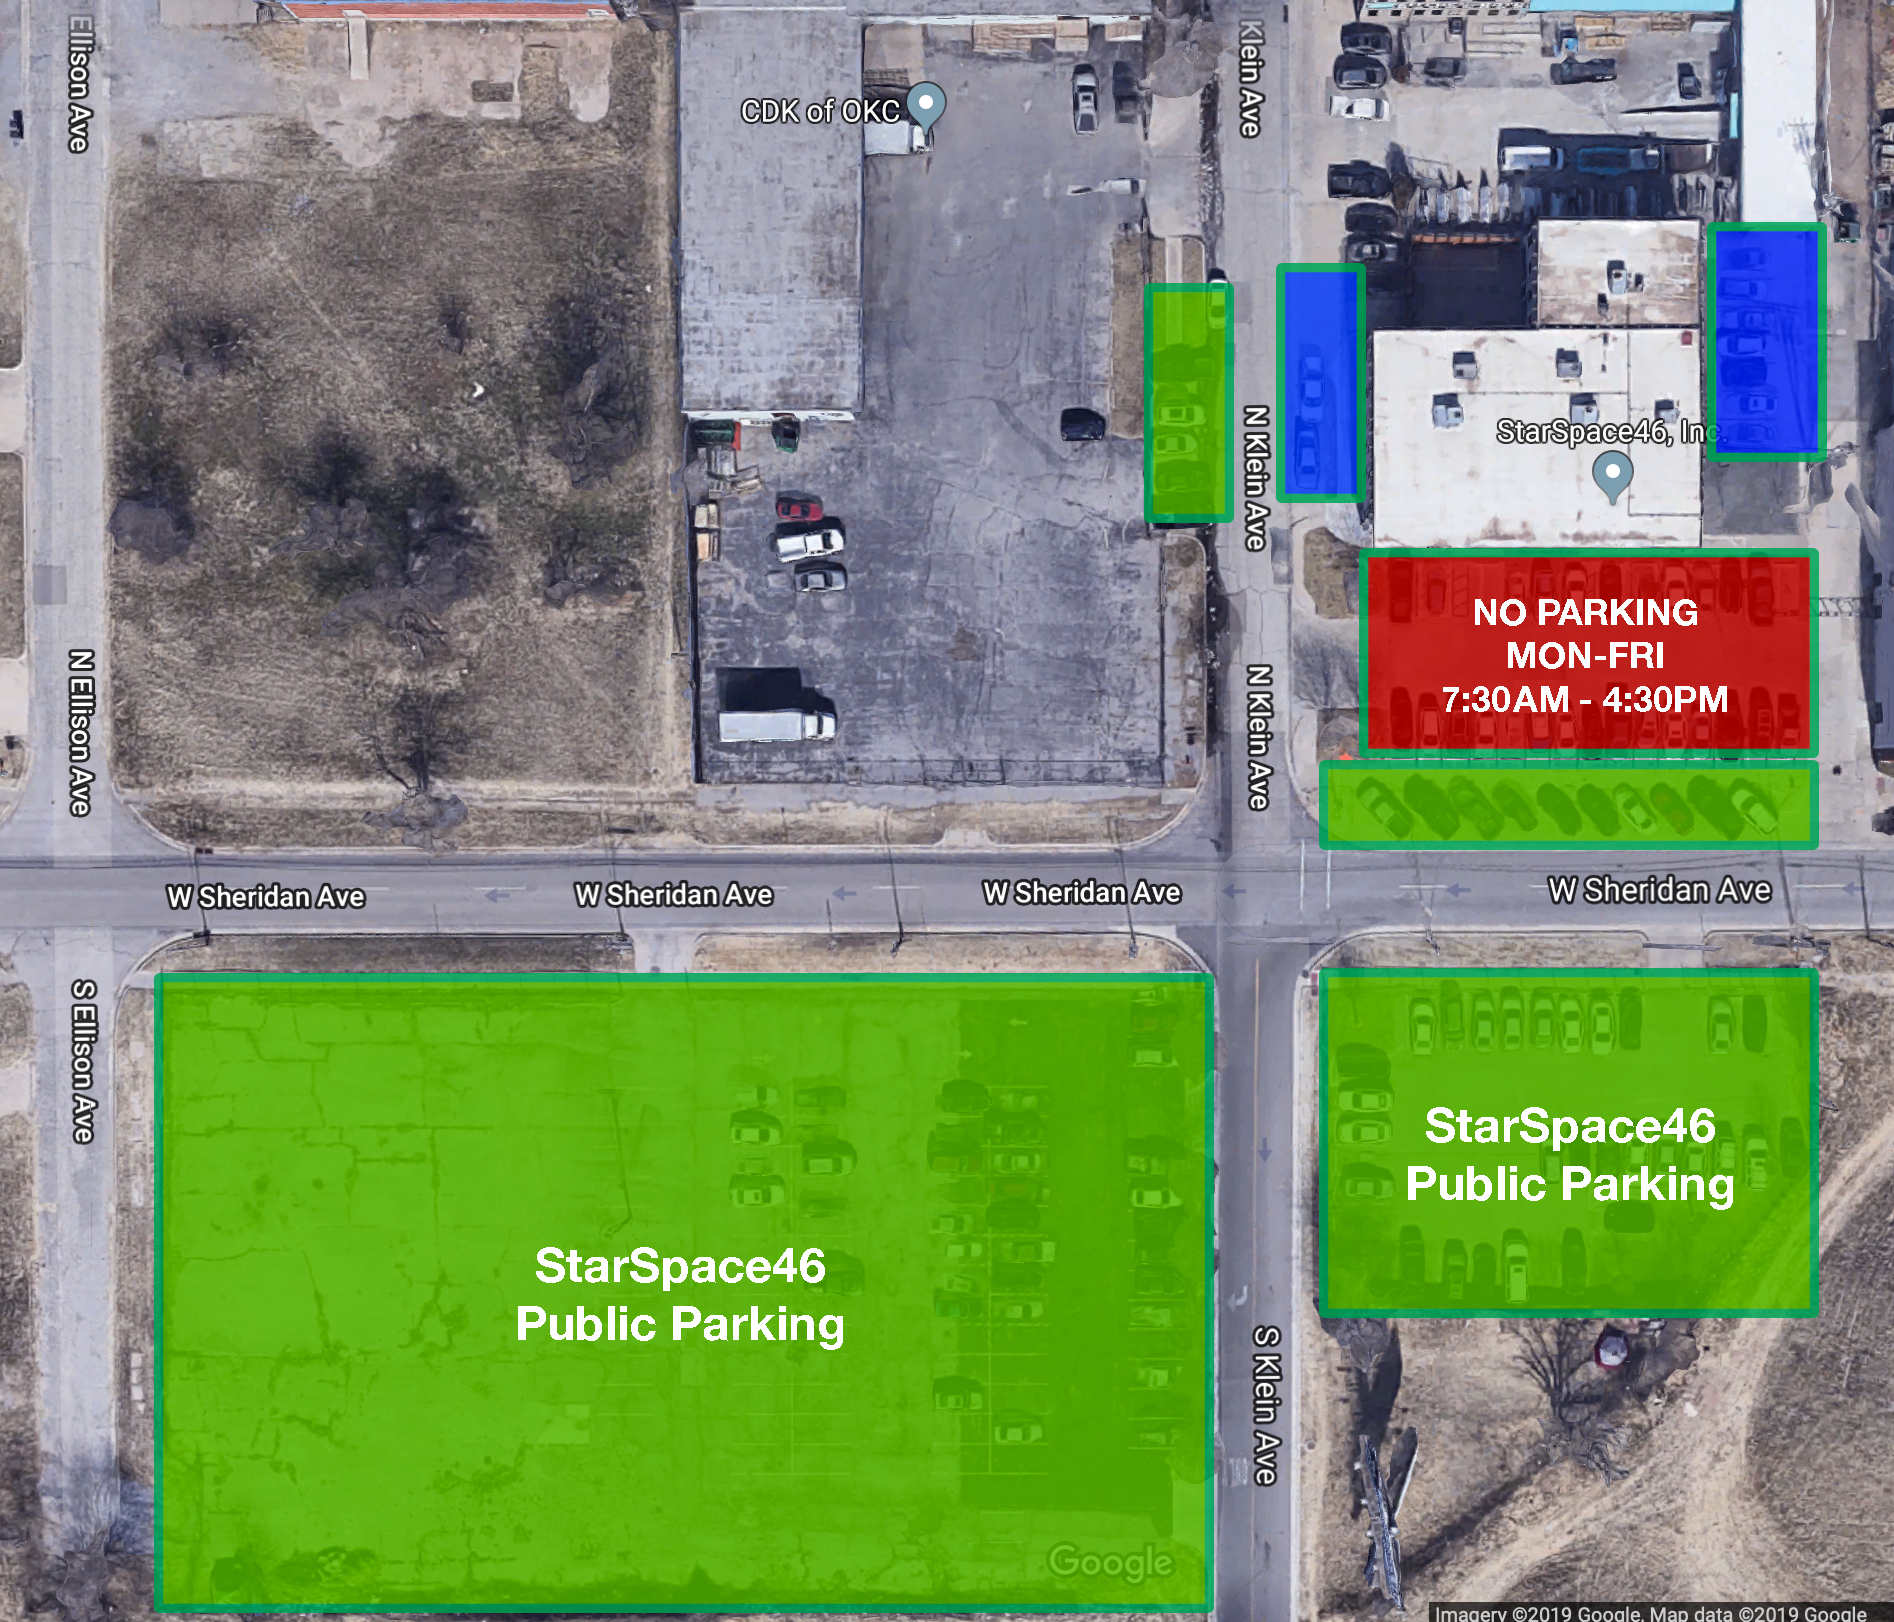 Parking at SS46 - Parking is available 24/7 on the South side of Sheridan Ave. in the large lot catty-corner across the street.You are at risk of tickets/towing if you park directly in front of the SS46 building during the hours of 7:30am - 4pm Monday-Friday.If it's after 4pm M-F, or on the weekends, you are allowed to park in front of the SS46 building.